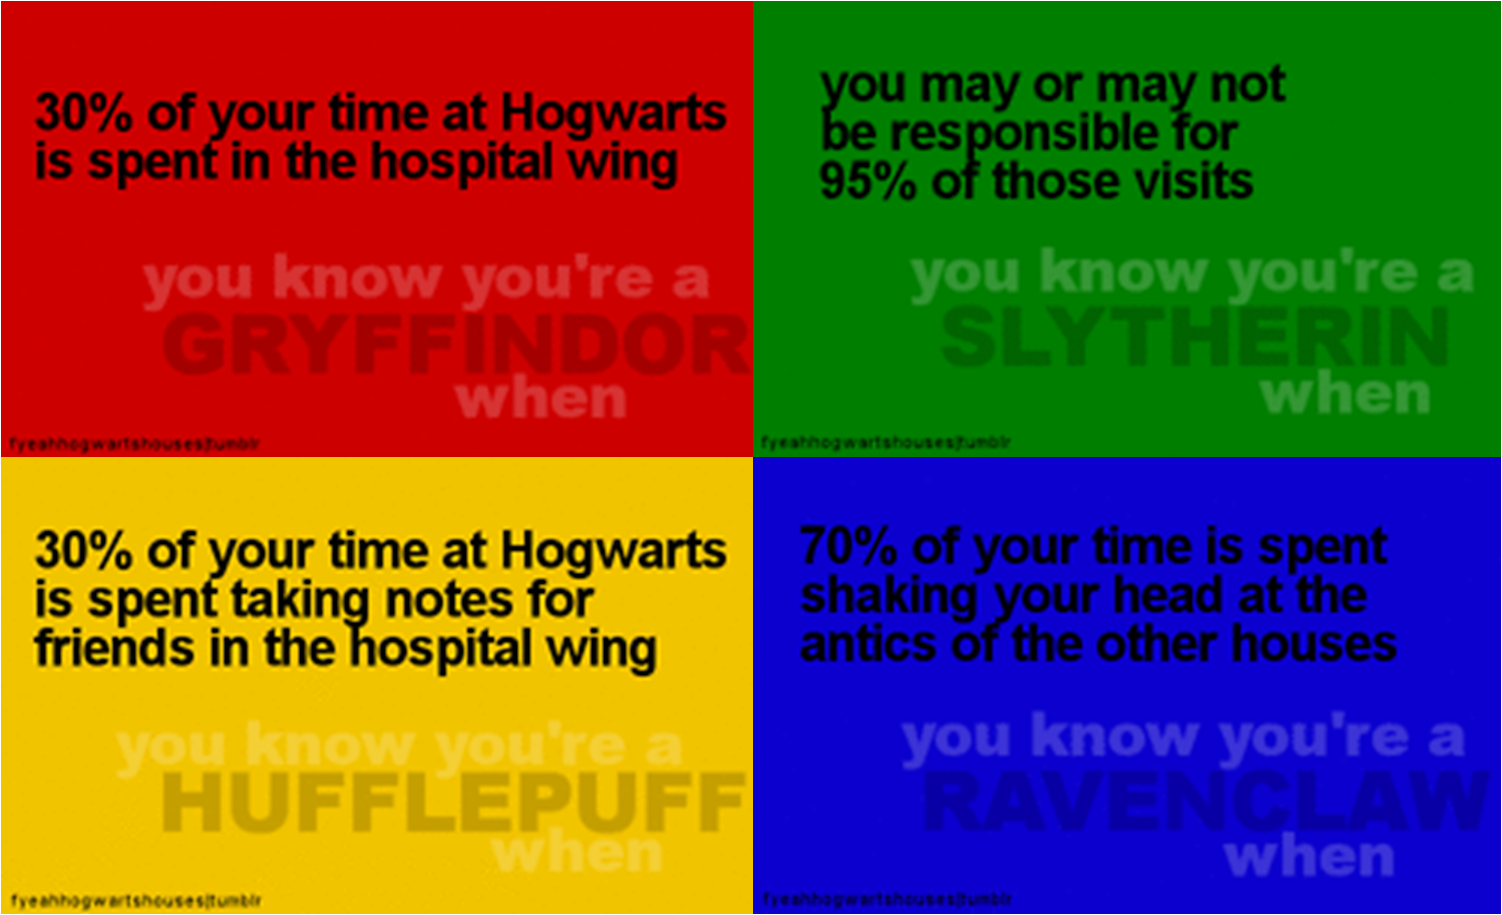 Hogwarts Houses Images The Hogwarts Houses HD Wallpaper And Background  Photos